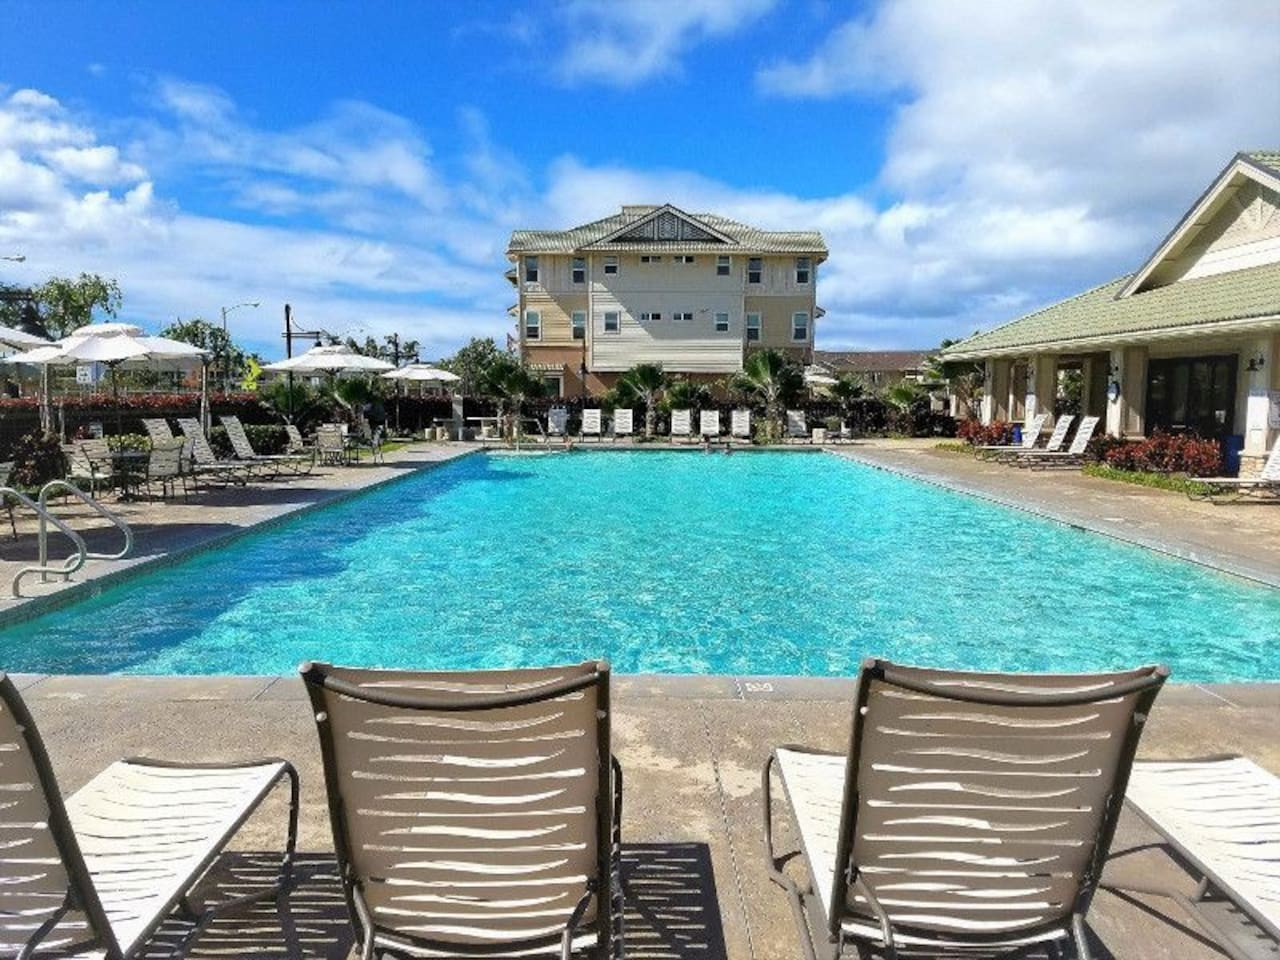 A short walk away is a huge inviting swimming pool and facilities to enjoy the Hawaii weather with a nice swim.